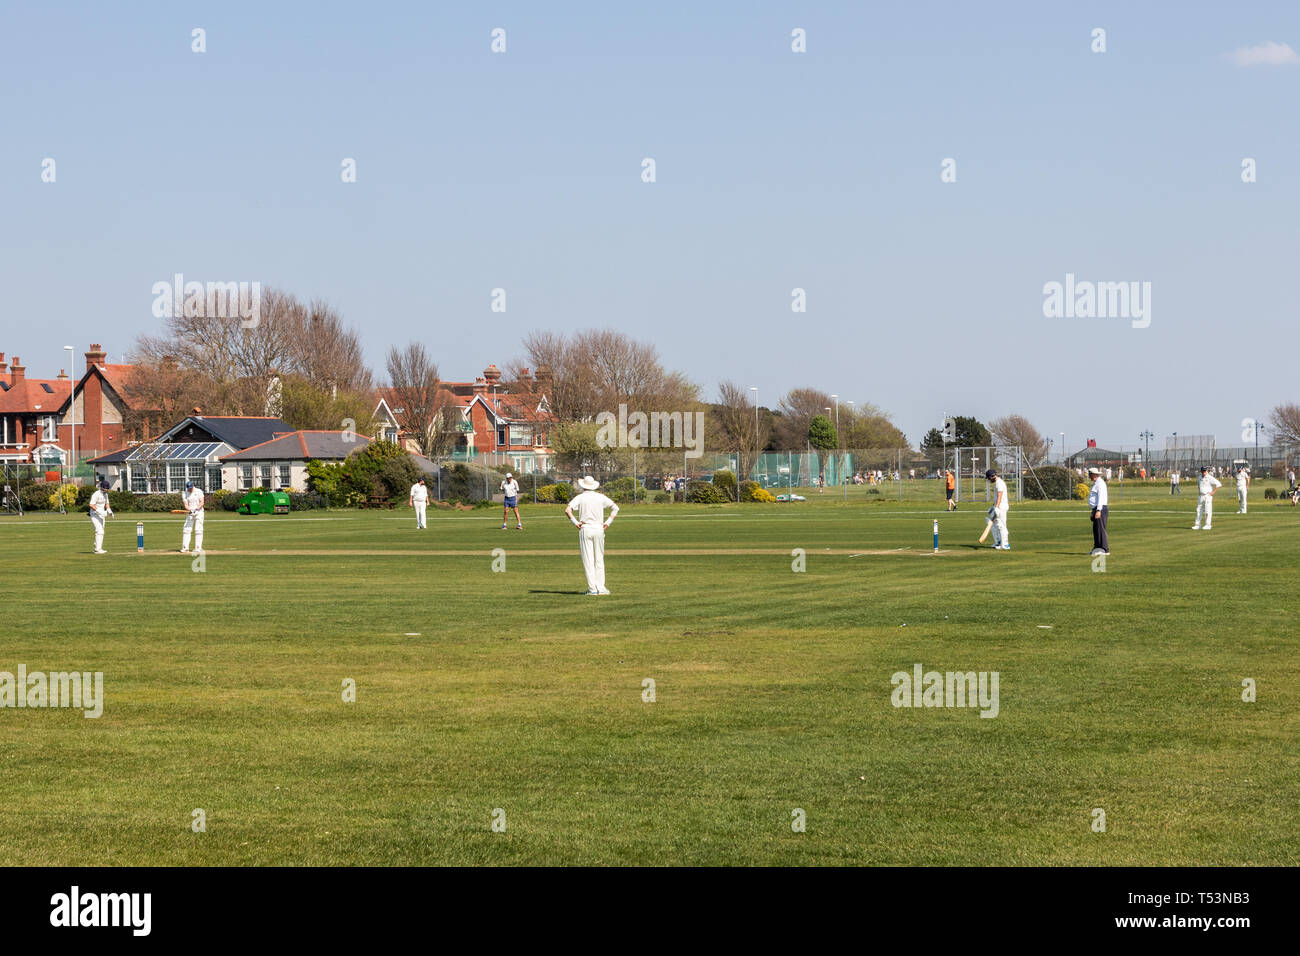 Village cricket match taking place in the spring sun Stock Photo